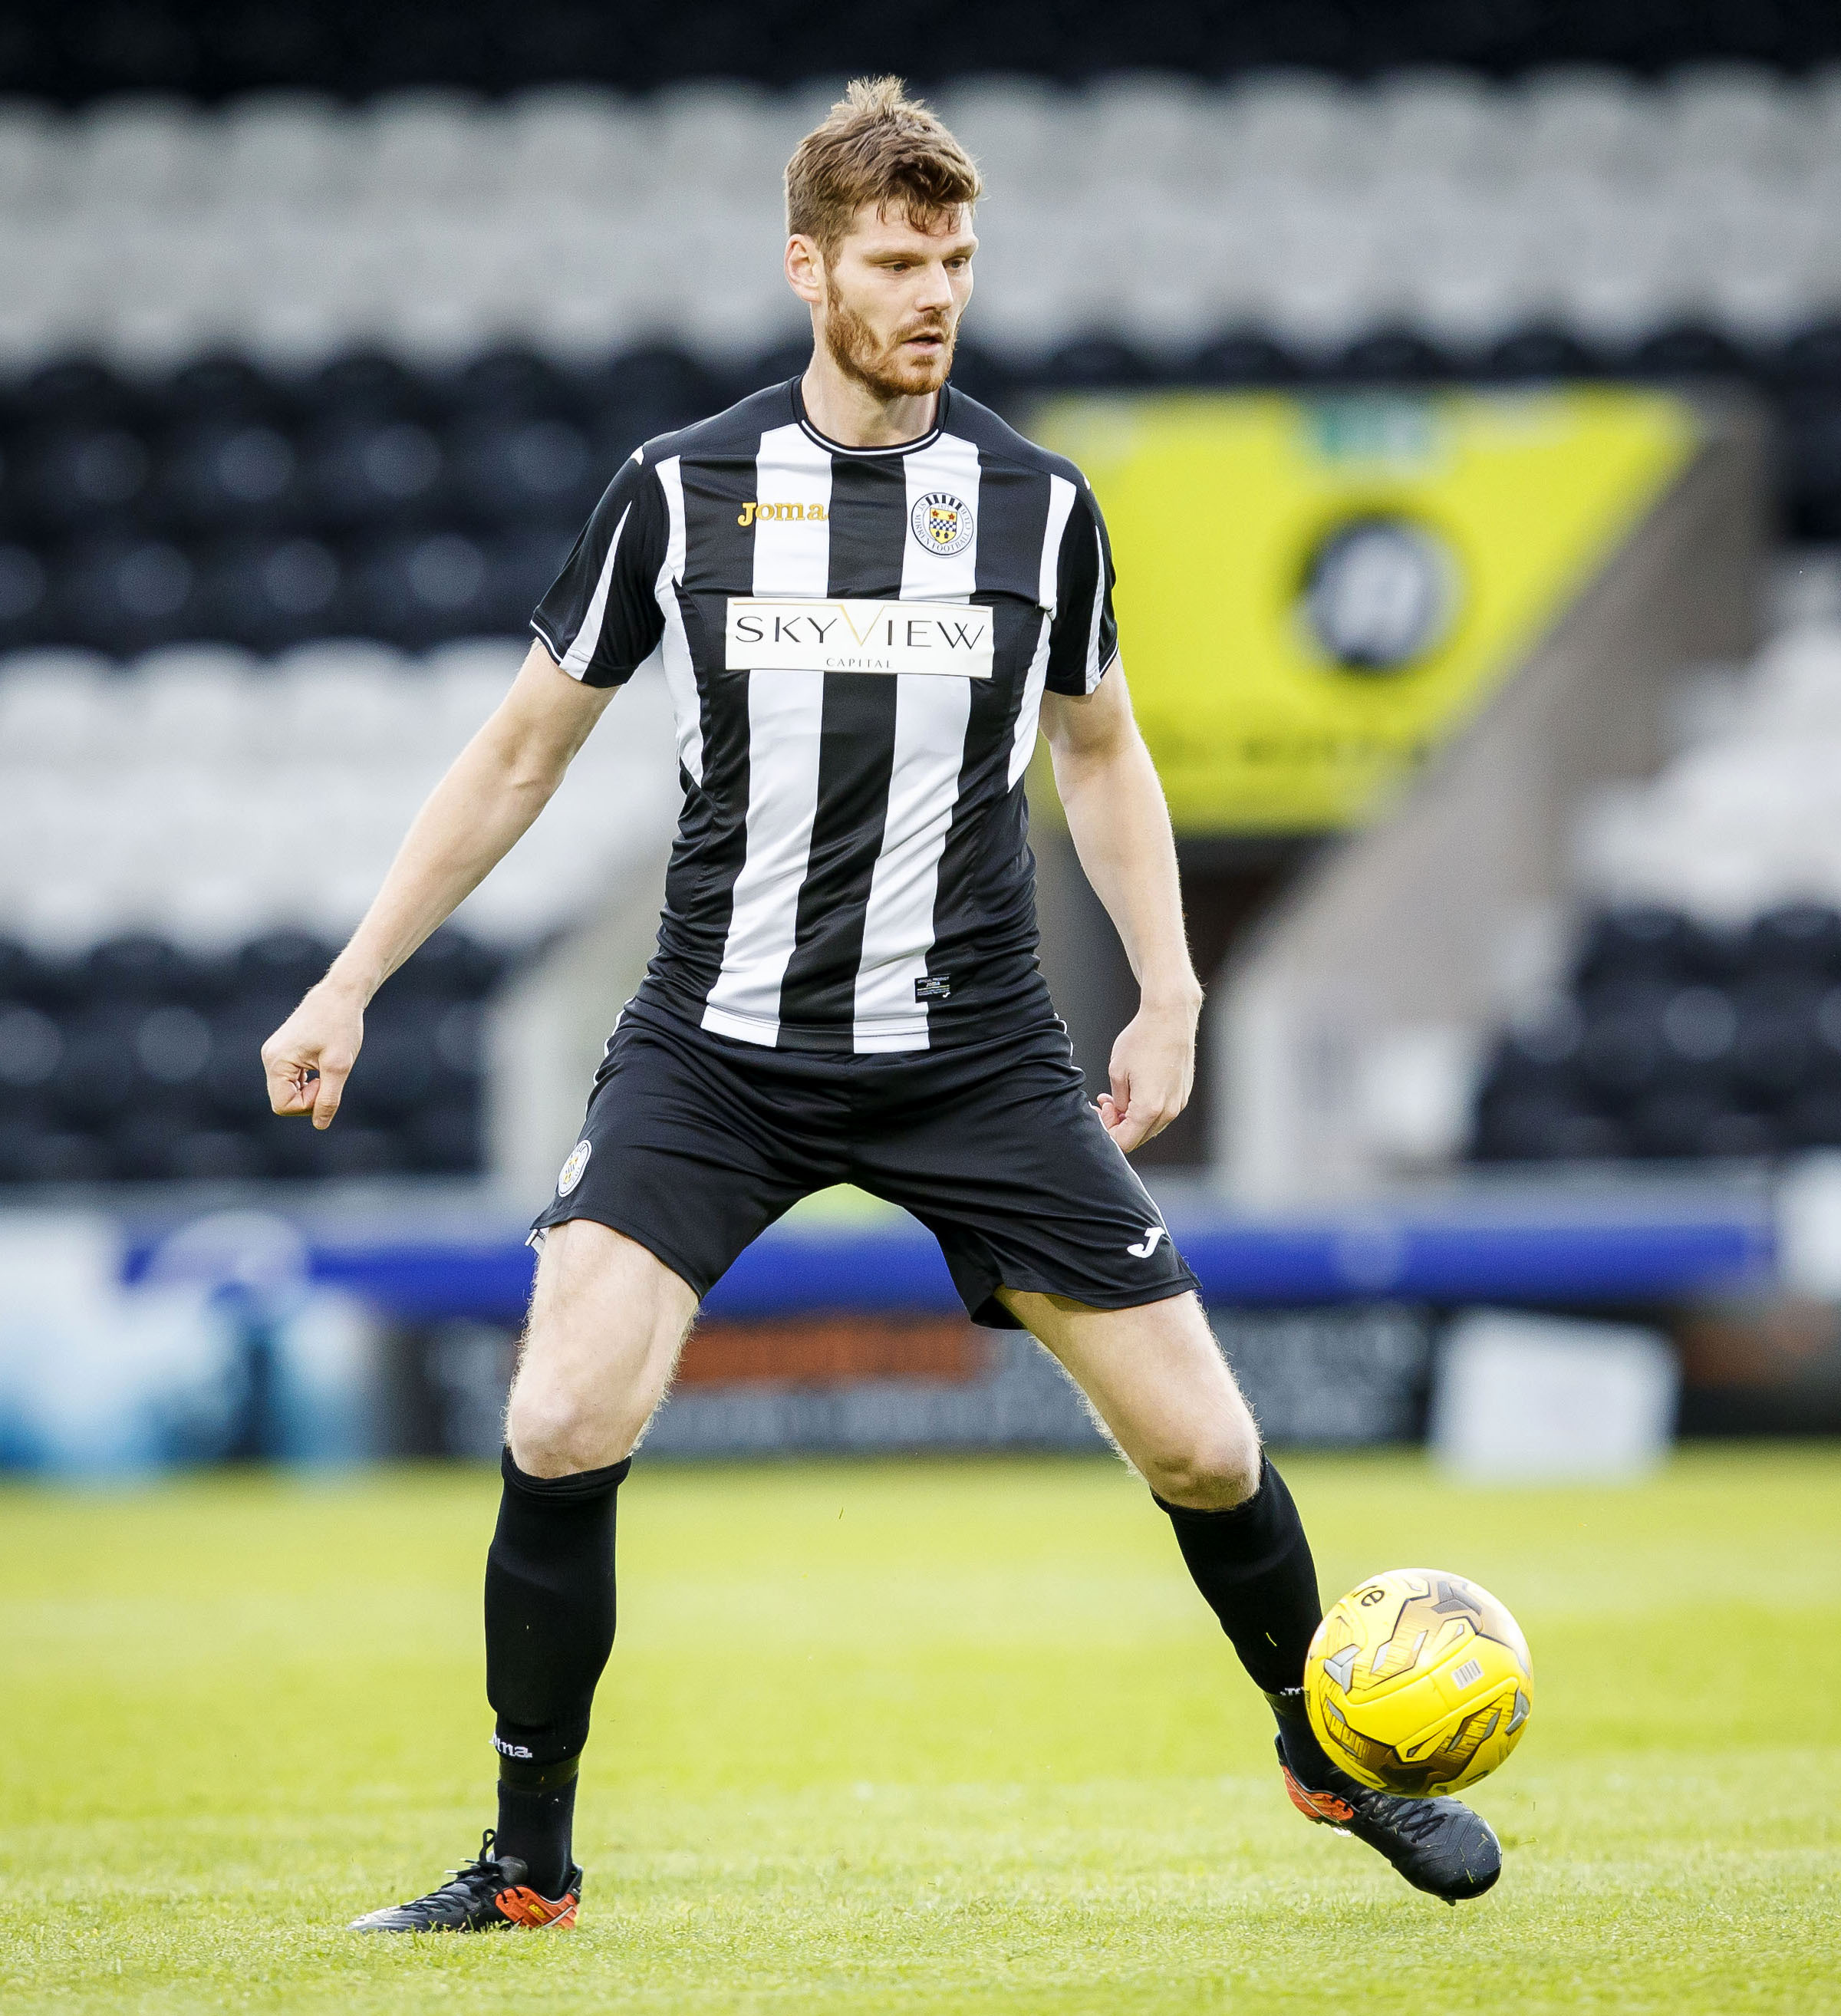 04/07/17 PRE-SEASON FRIENDLY ST MIRREN v DUNDEE (1-3) PAISLEY 2021 - PAISLEY St Mirren's Gary MacKenzie in action